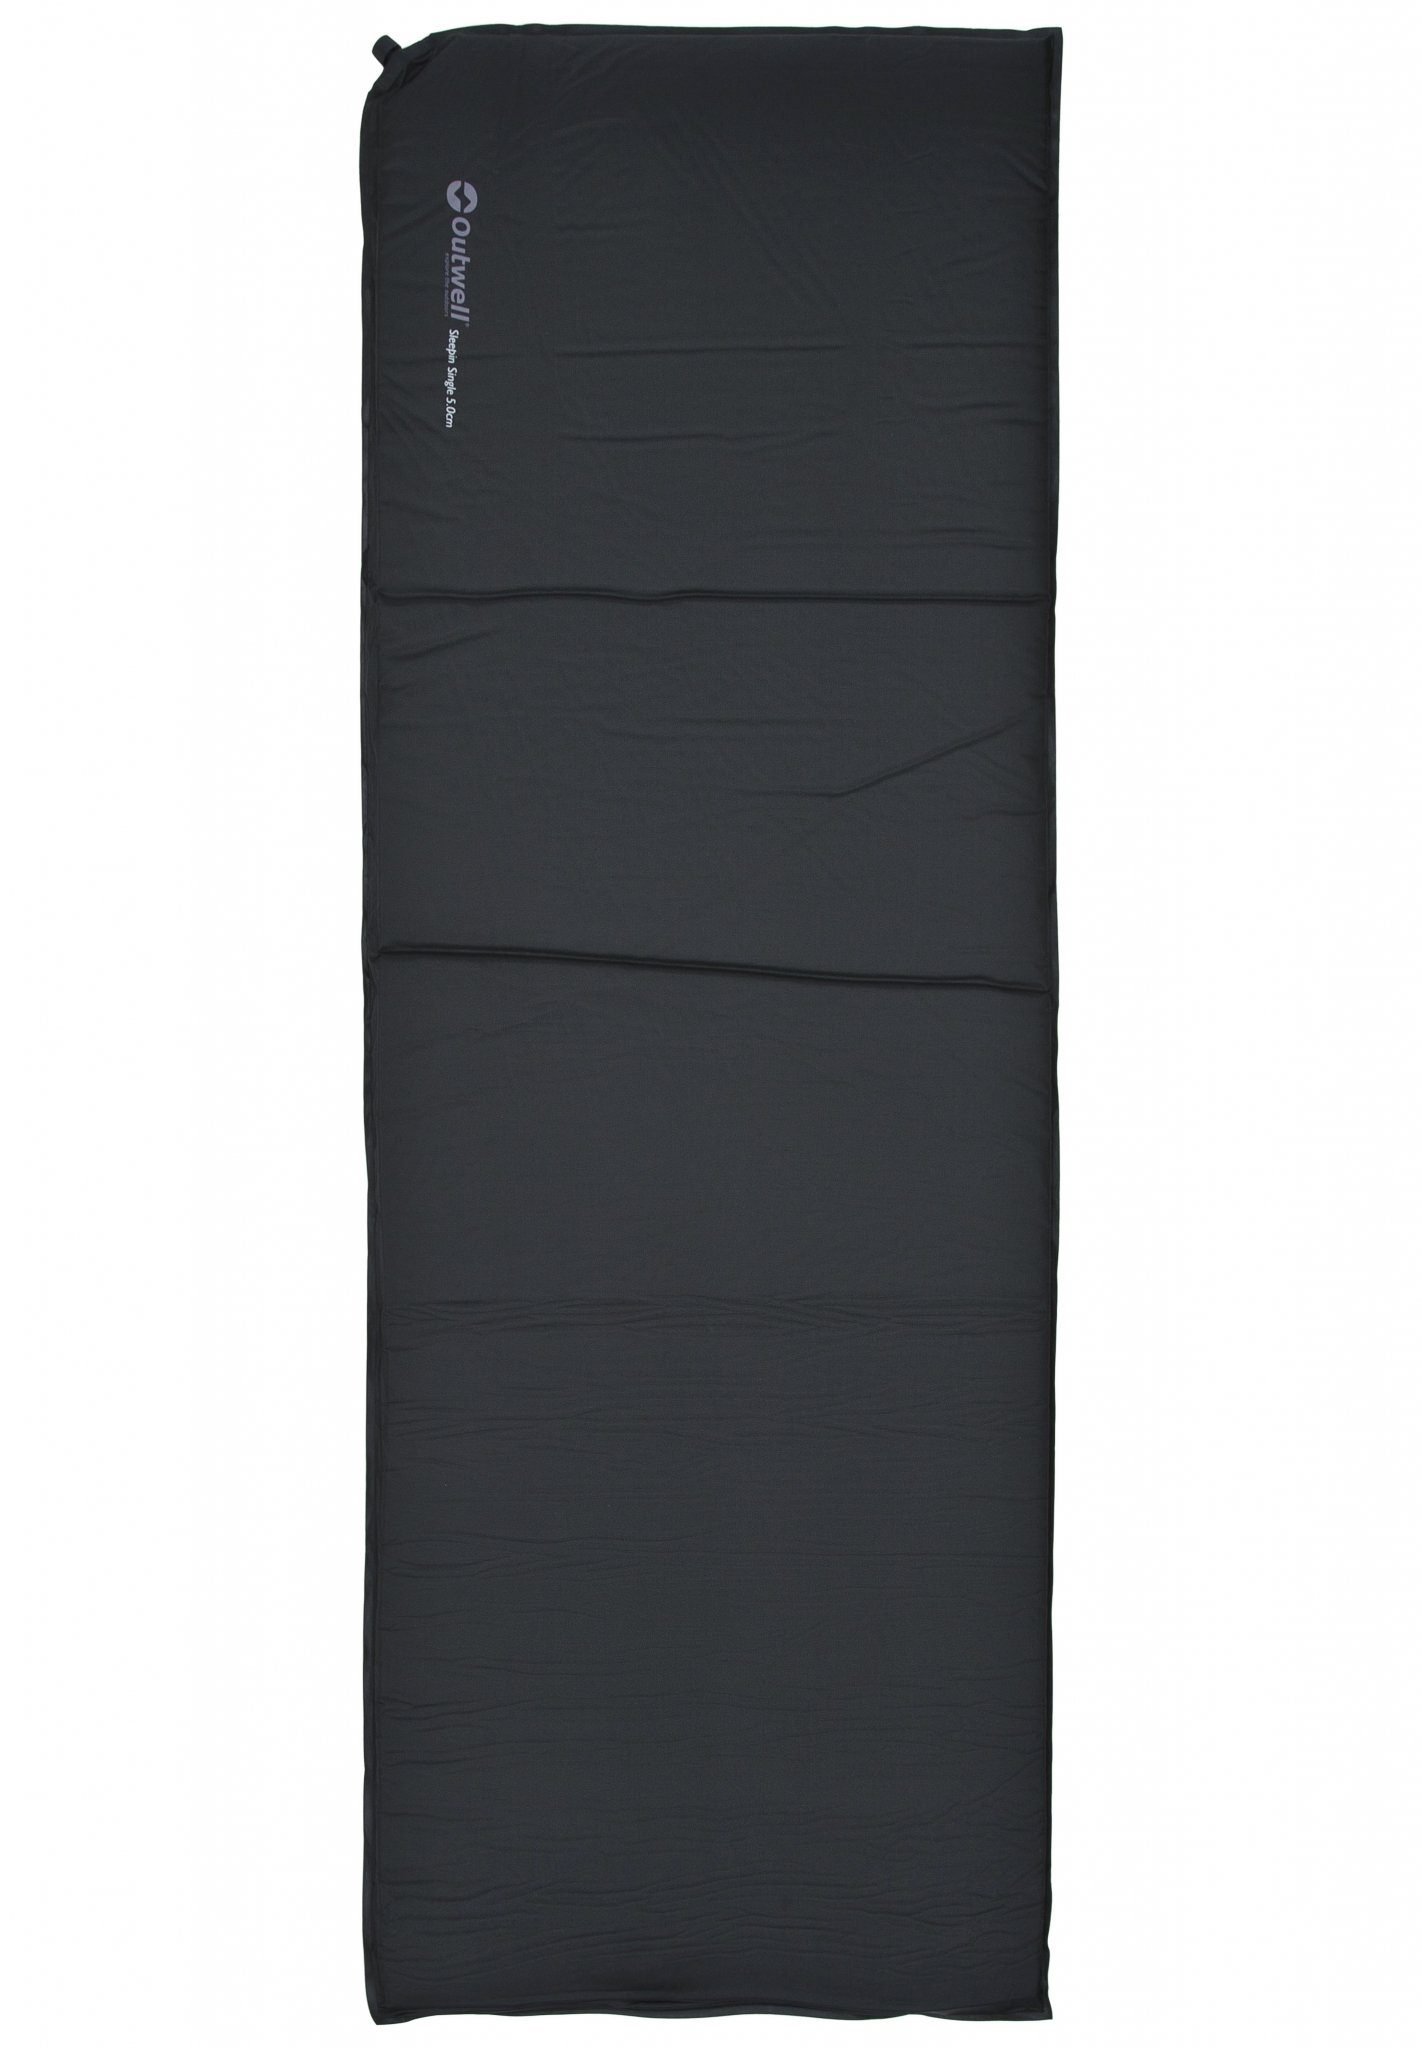 Outwell Luftmatratze »Sleepin Single Self-Inflating Mat 5.0cm«